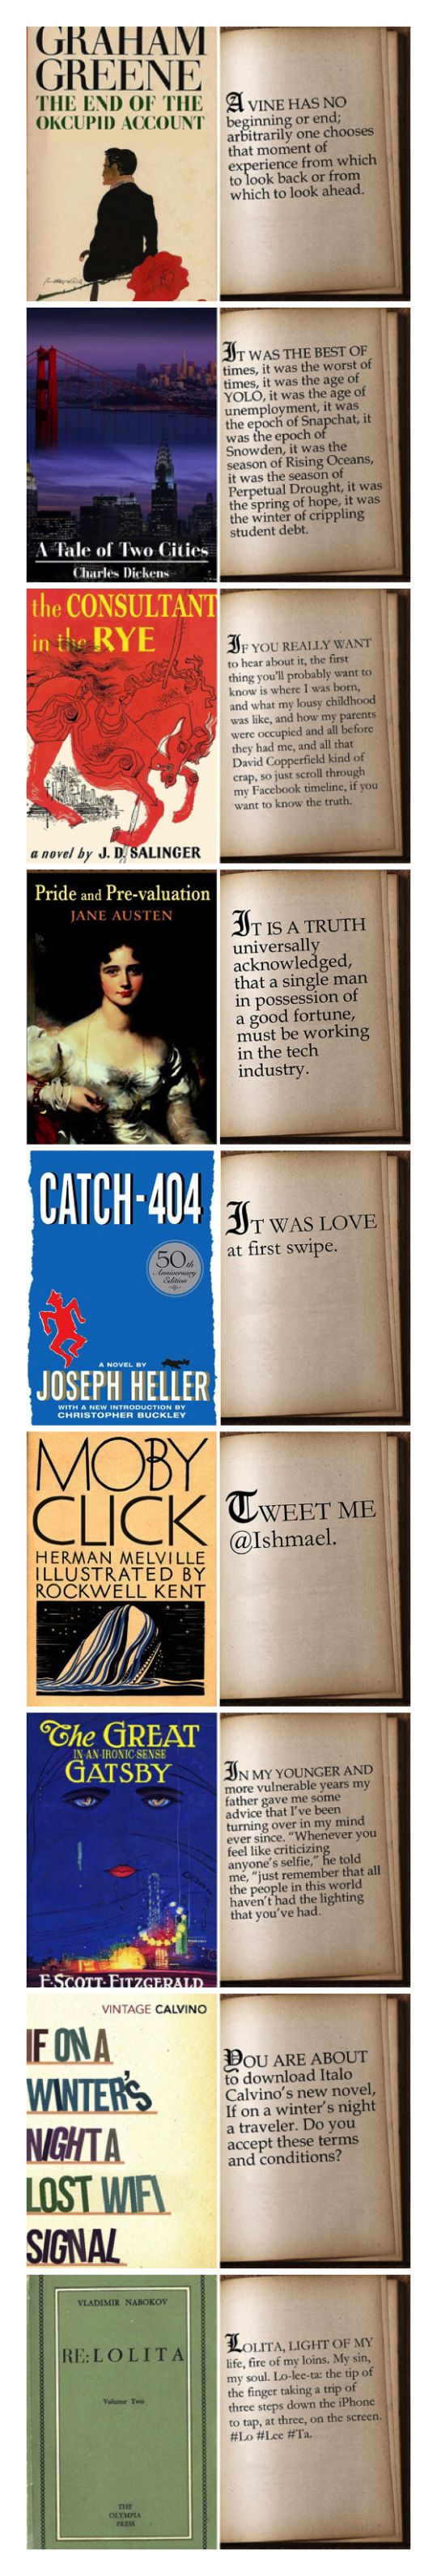 First lines from famous novels rewritten for 21st century / a hilarious project from BuzzFeed